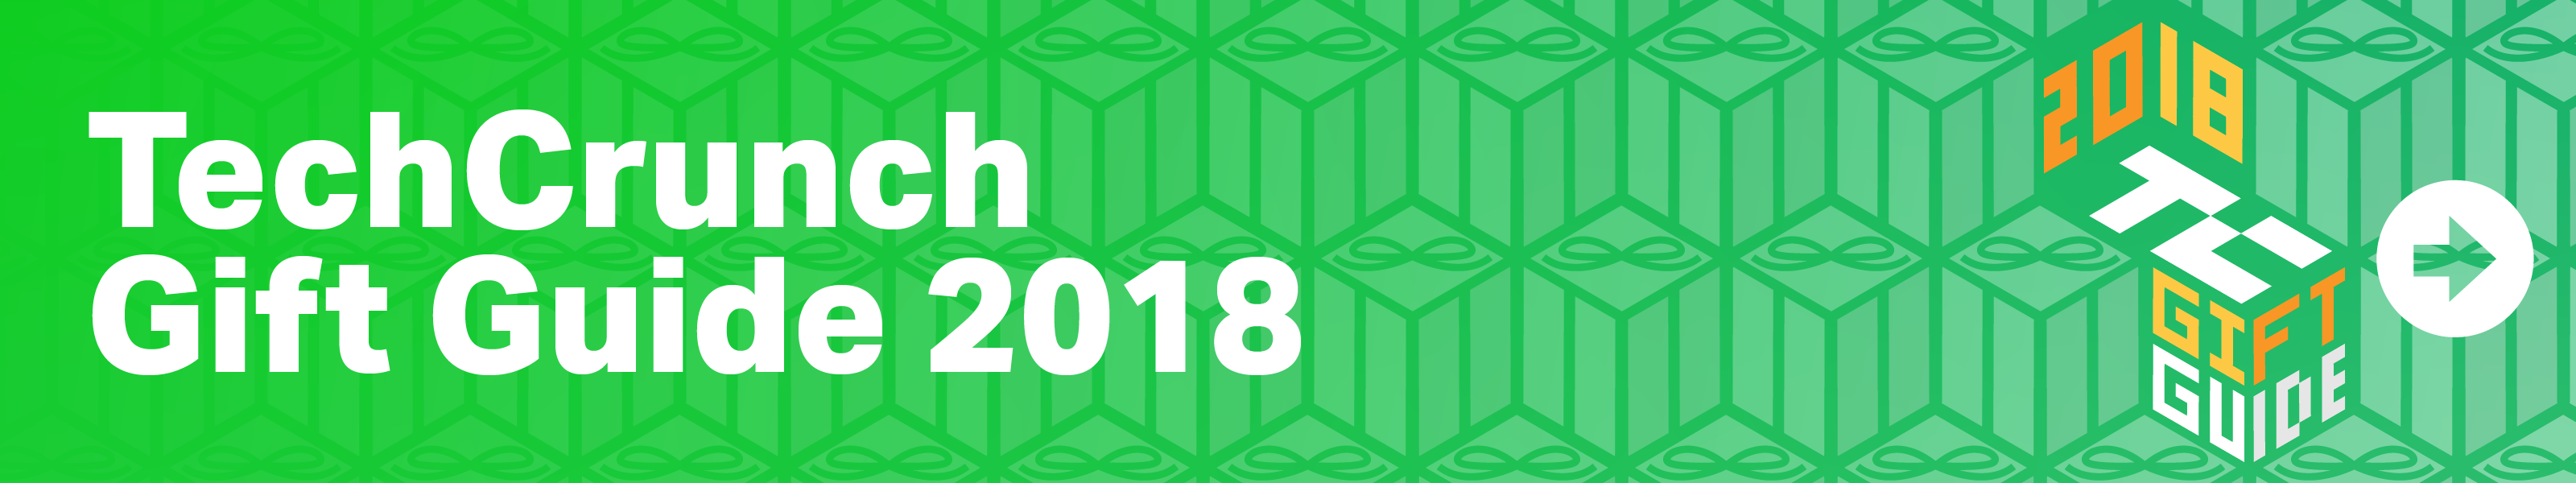 TechCrunch Gift Guide 2018 banner  TechCrunch's Favorite Things of 2018 tc gift guide 2018 banner